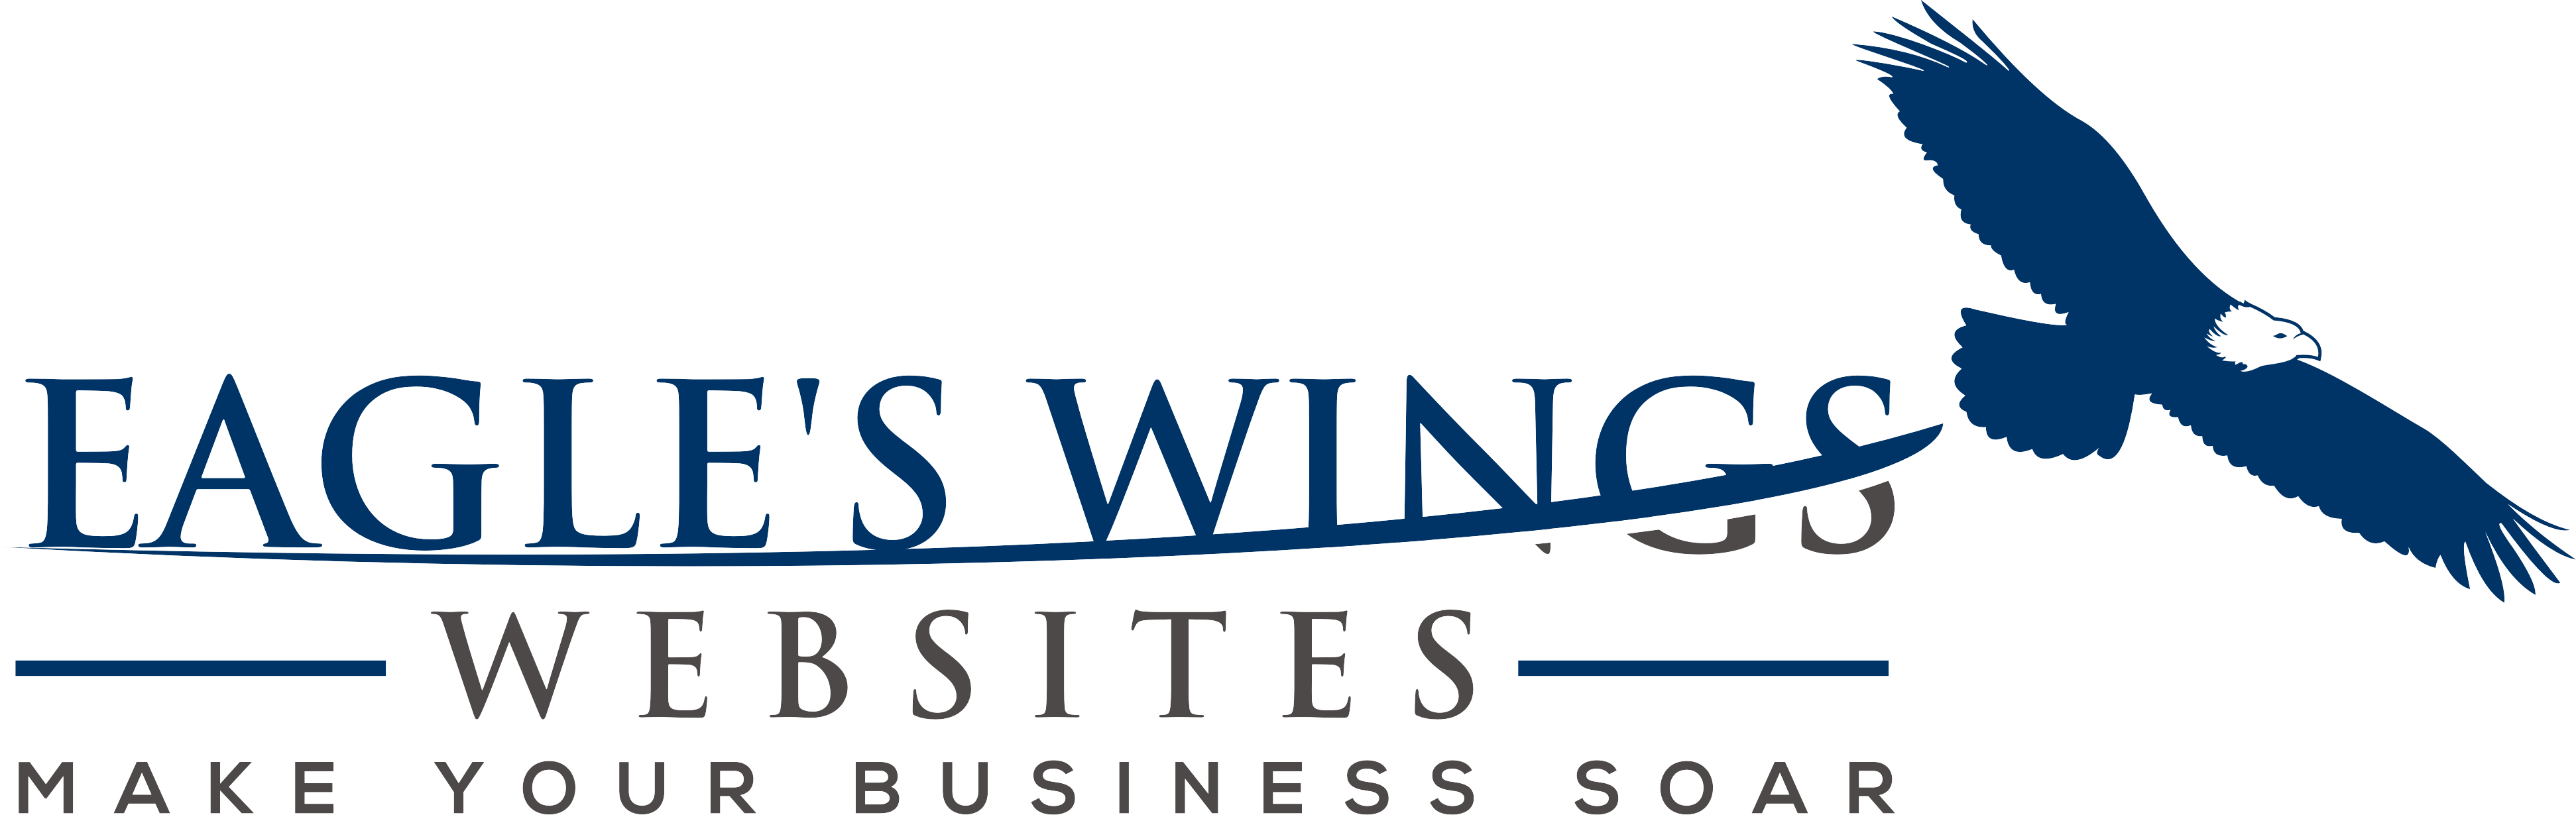 Eagle's Wings Websites